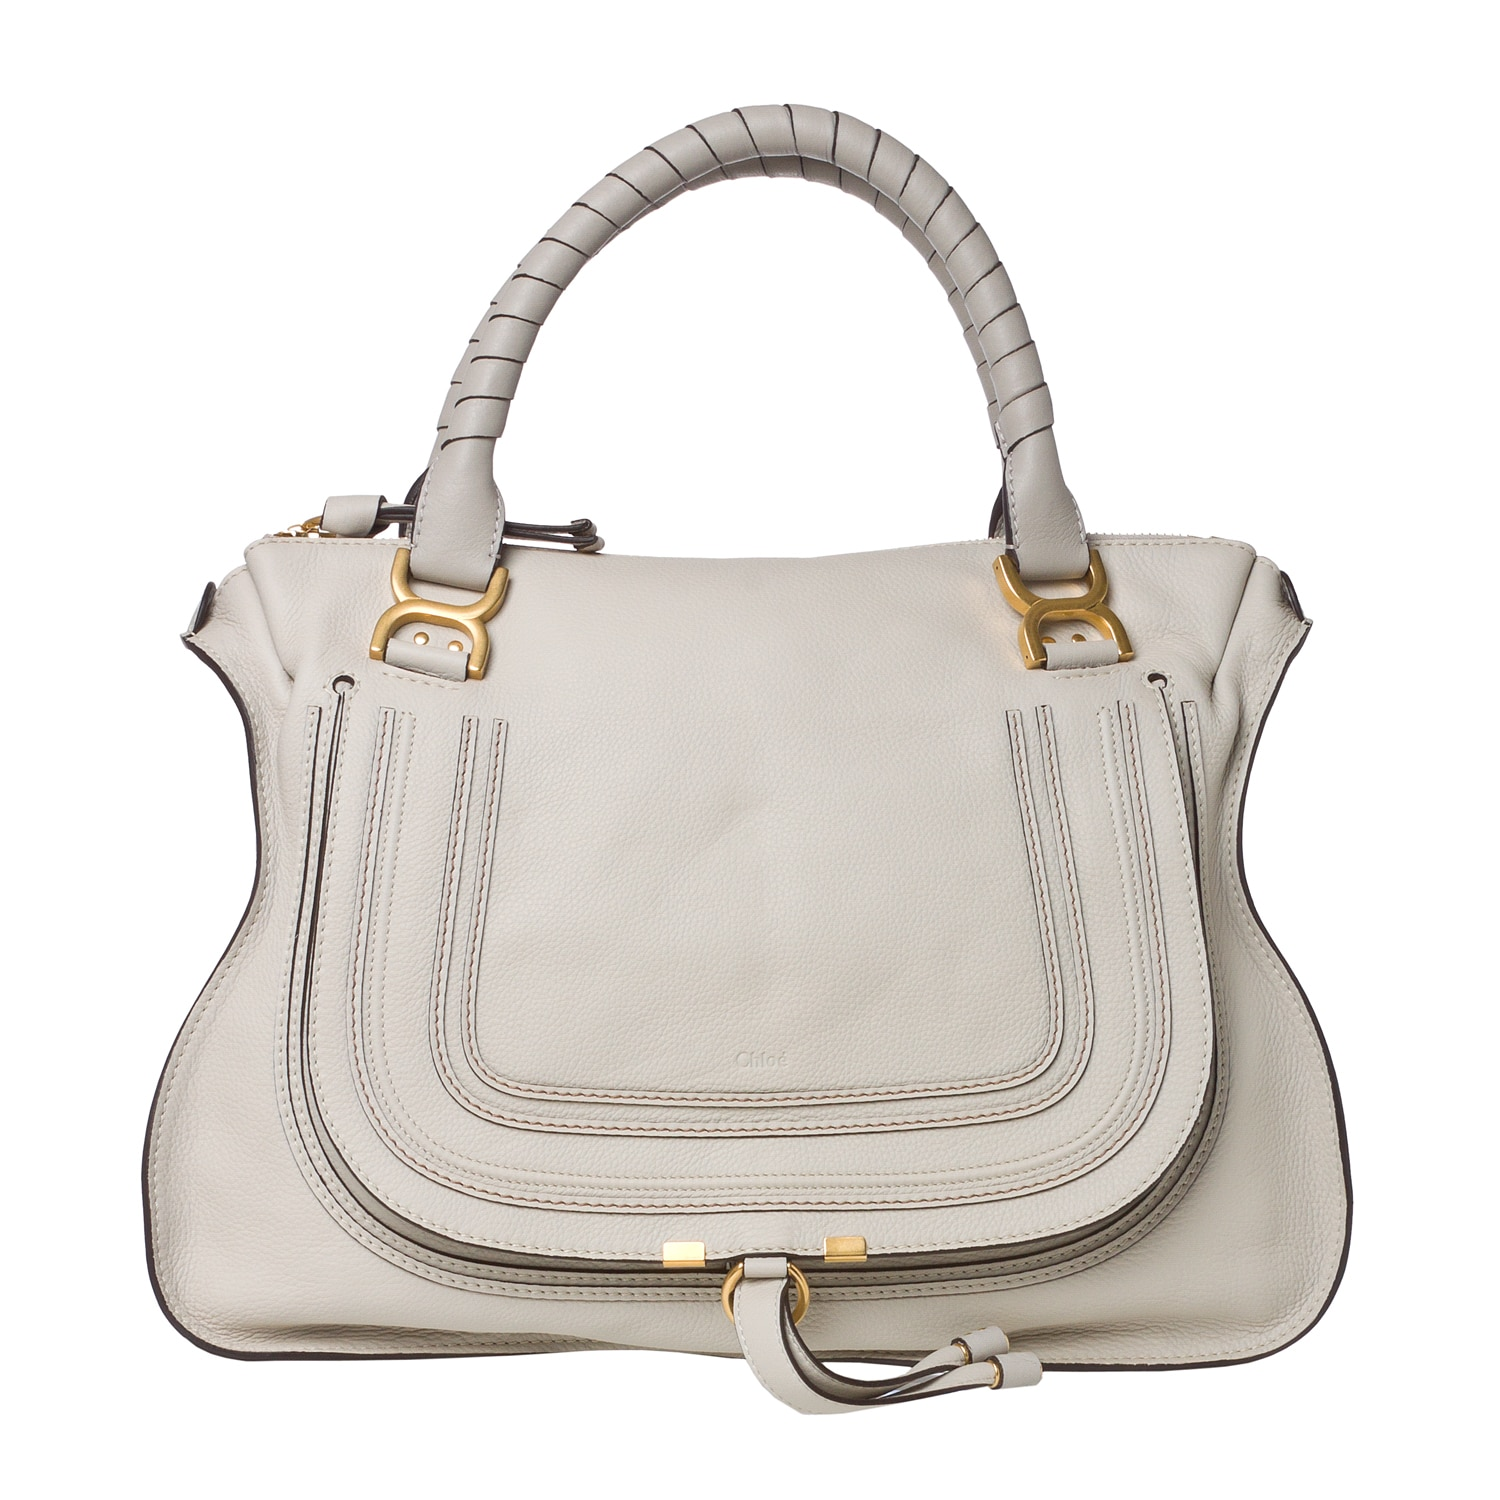 Chloe 'Marcie - Medium' Leather Crossbody Bag - Designer Handbag